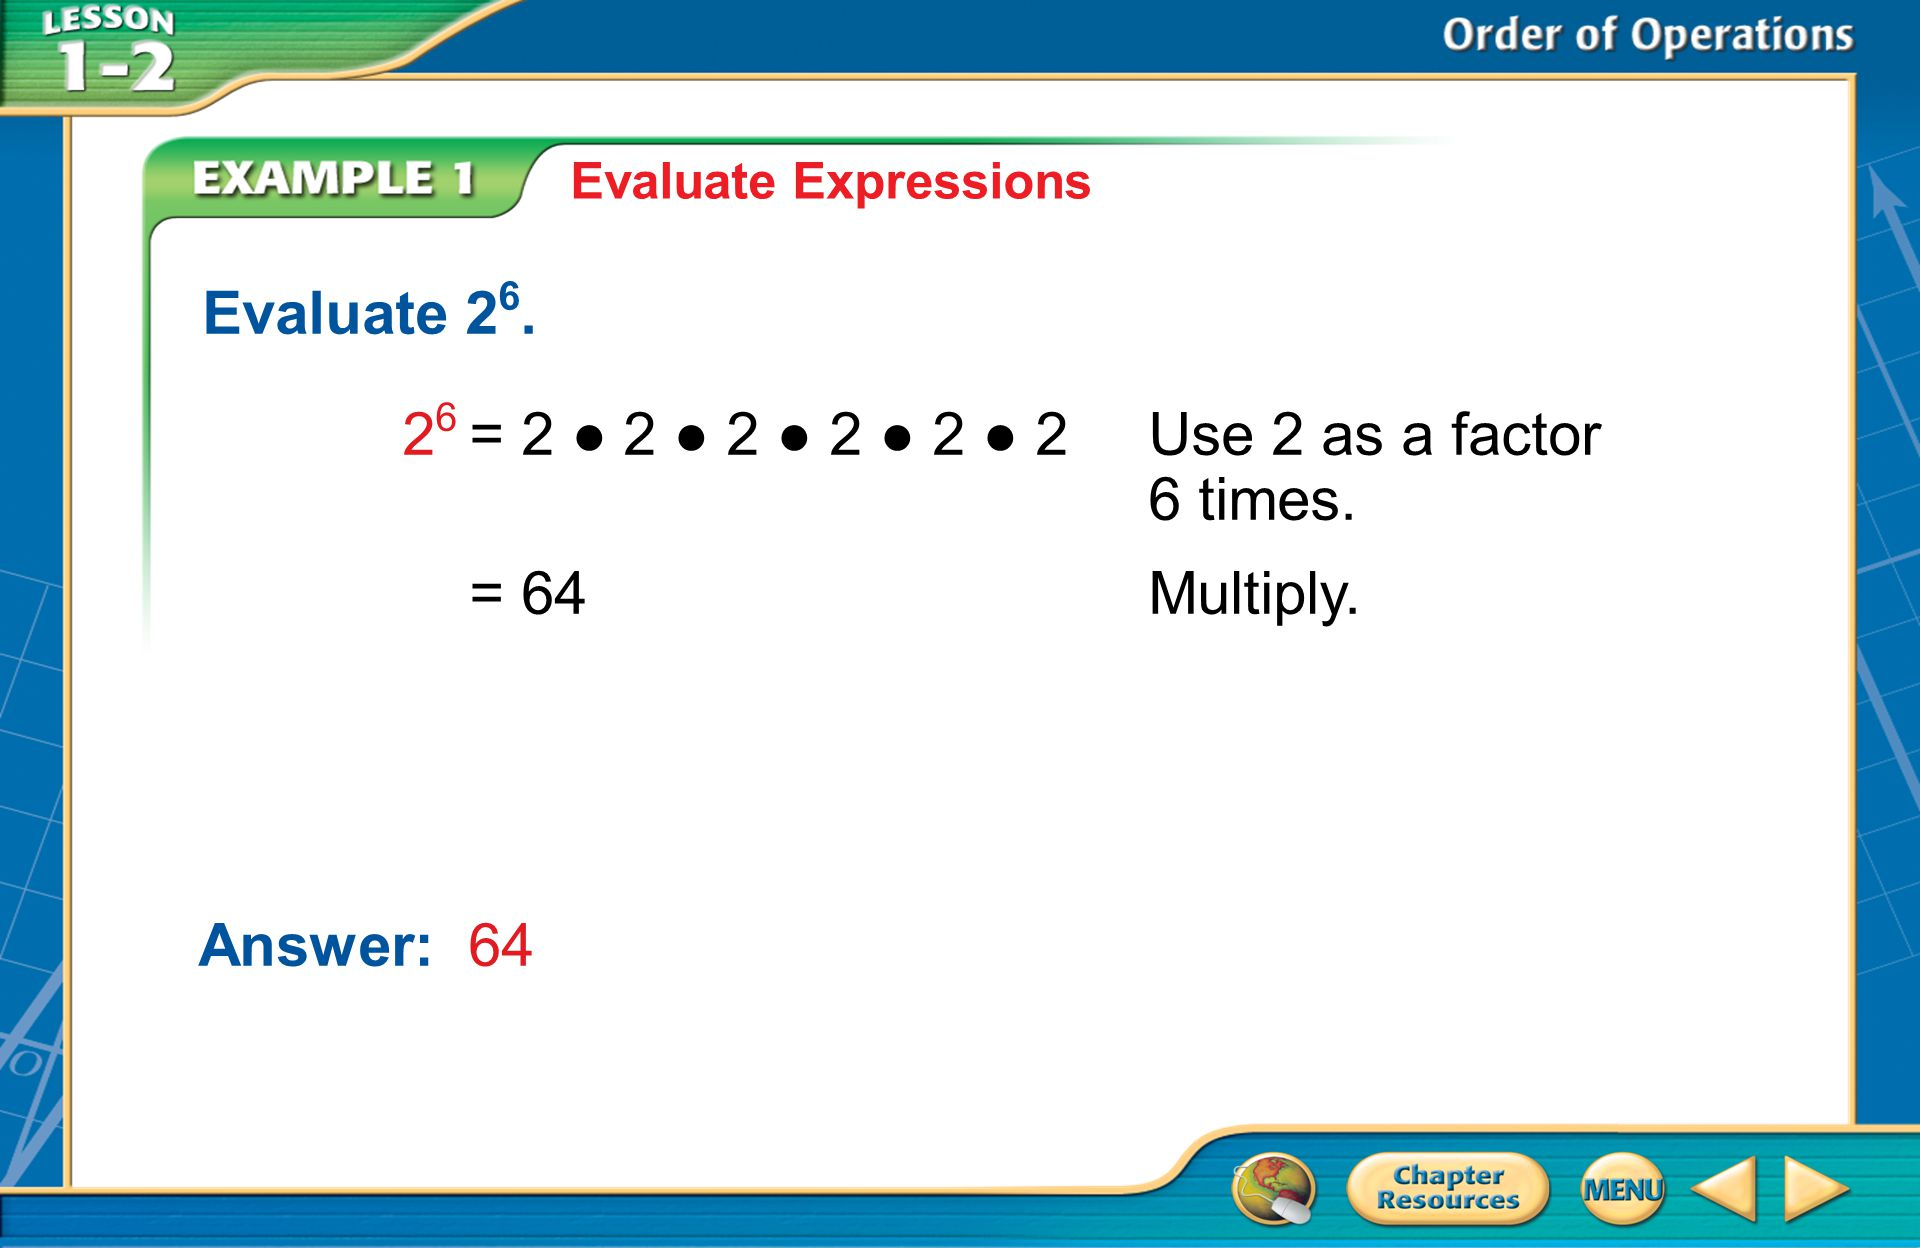 Example 1 Evaluate Expressions Evaluate 2 6. 2 6 = 2 2 2 2 2 2 Use 2 as a factor 6 times.